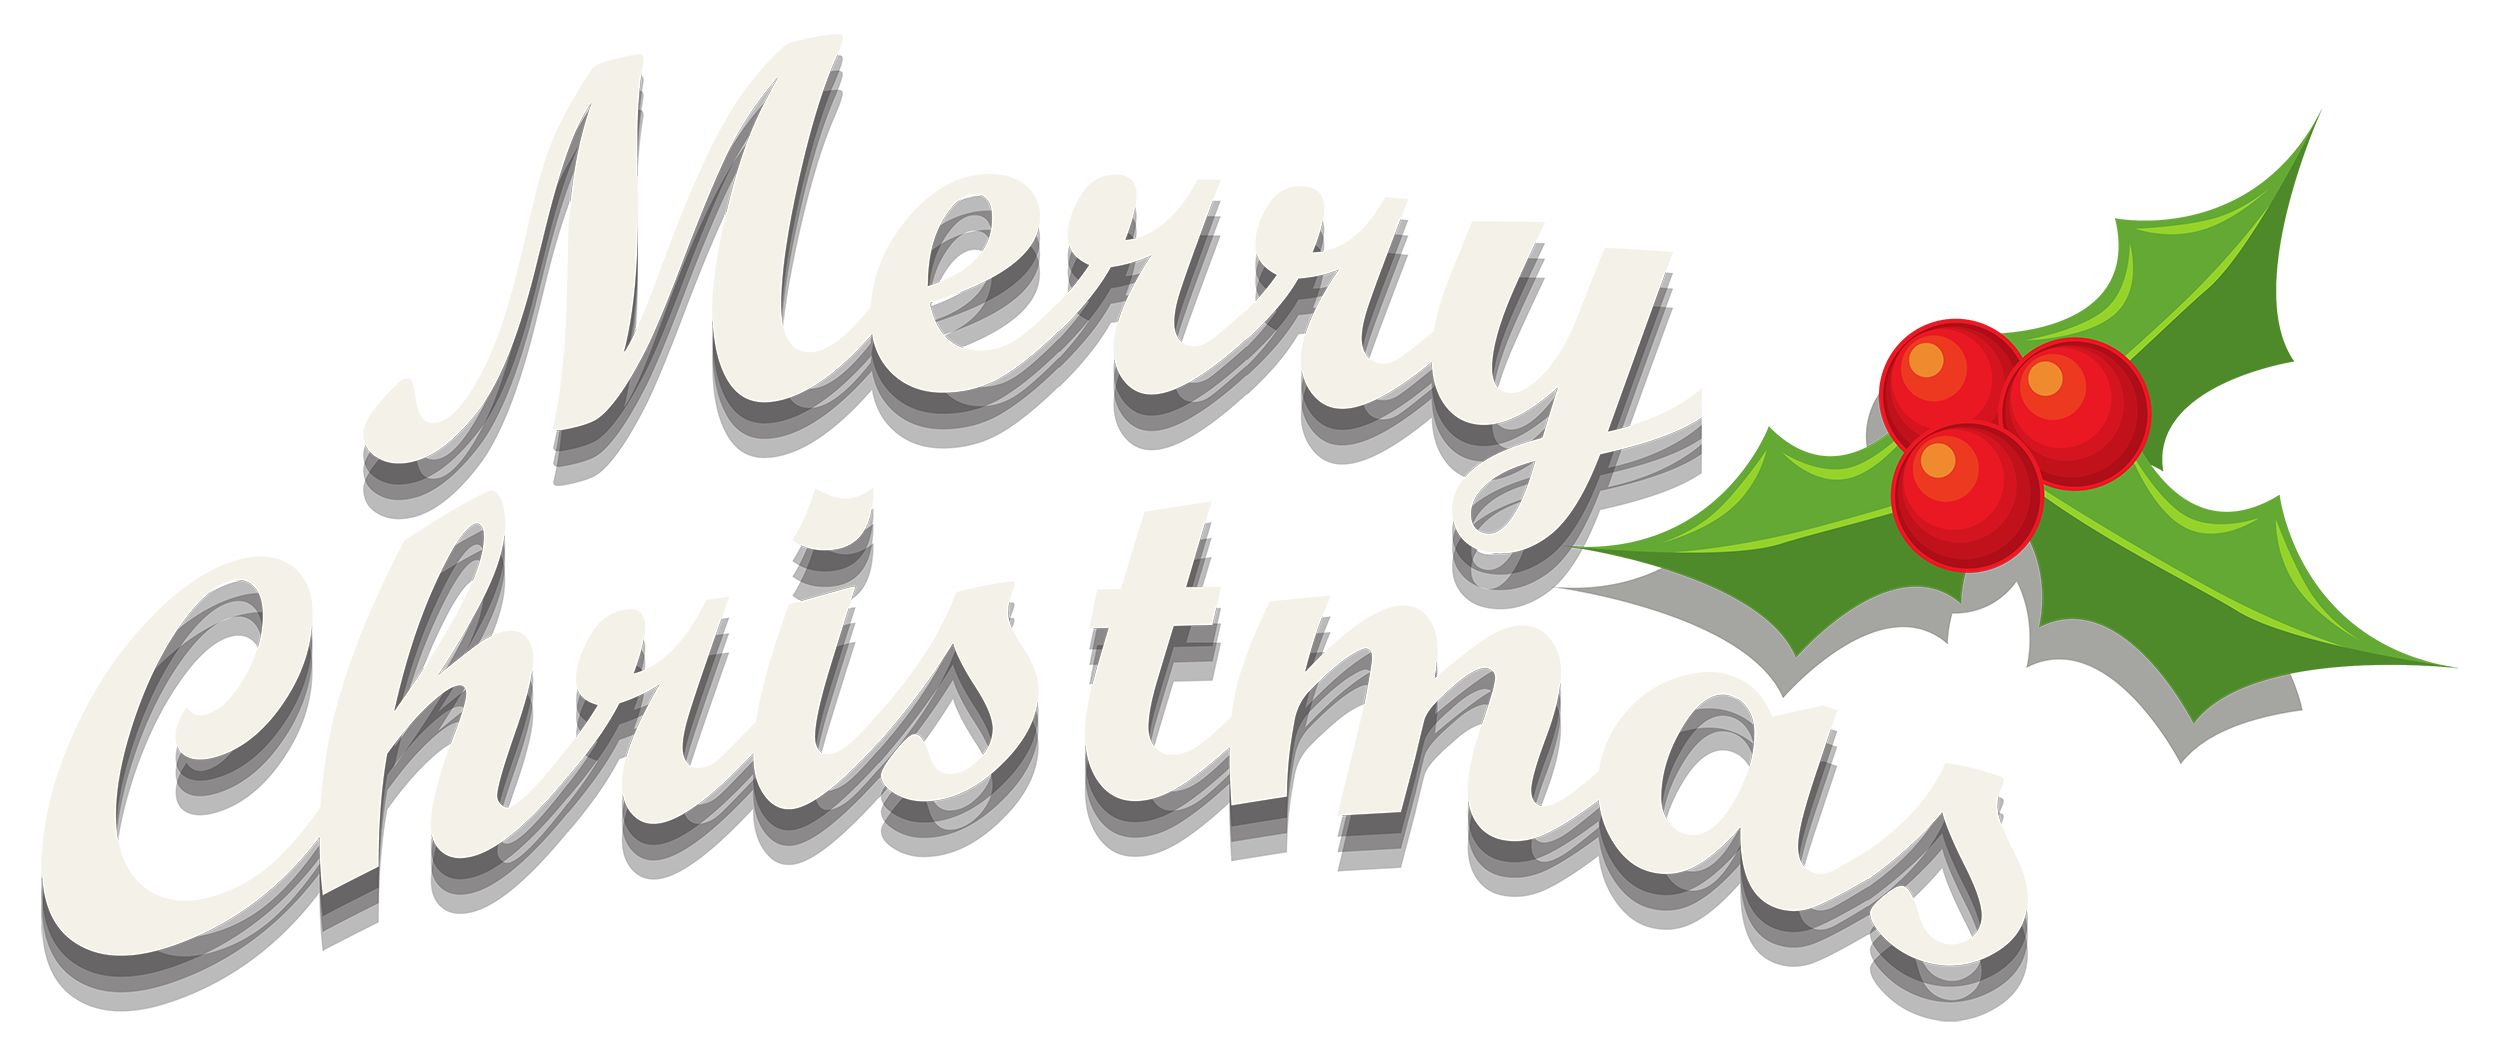 Merry_Christmas_Decor_with_Mistletoe_PNG_Clipart-31.png